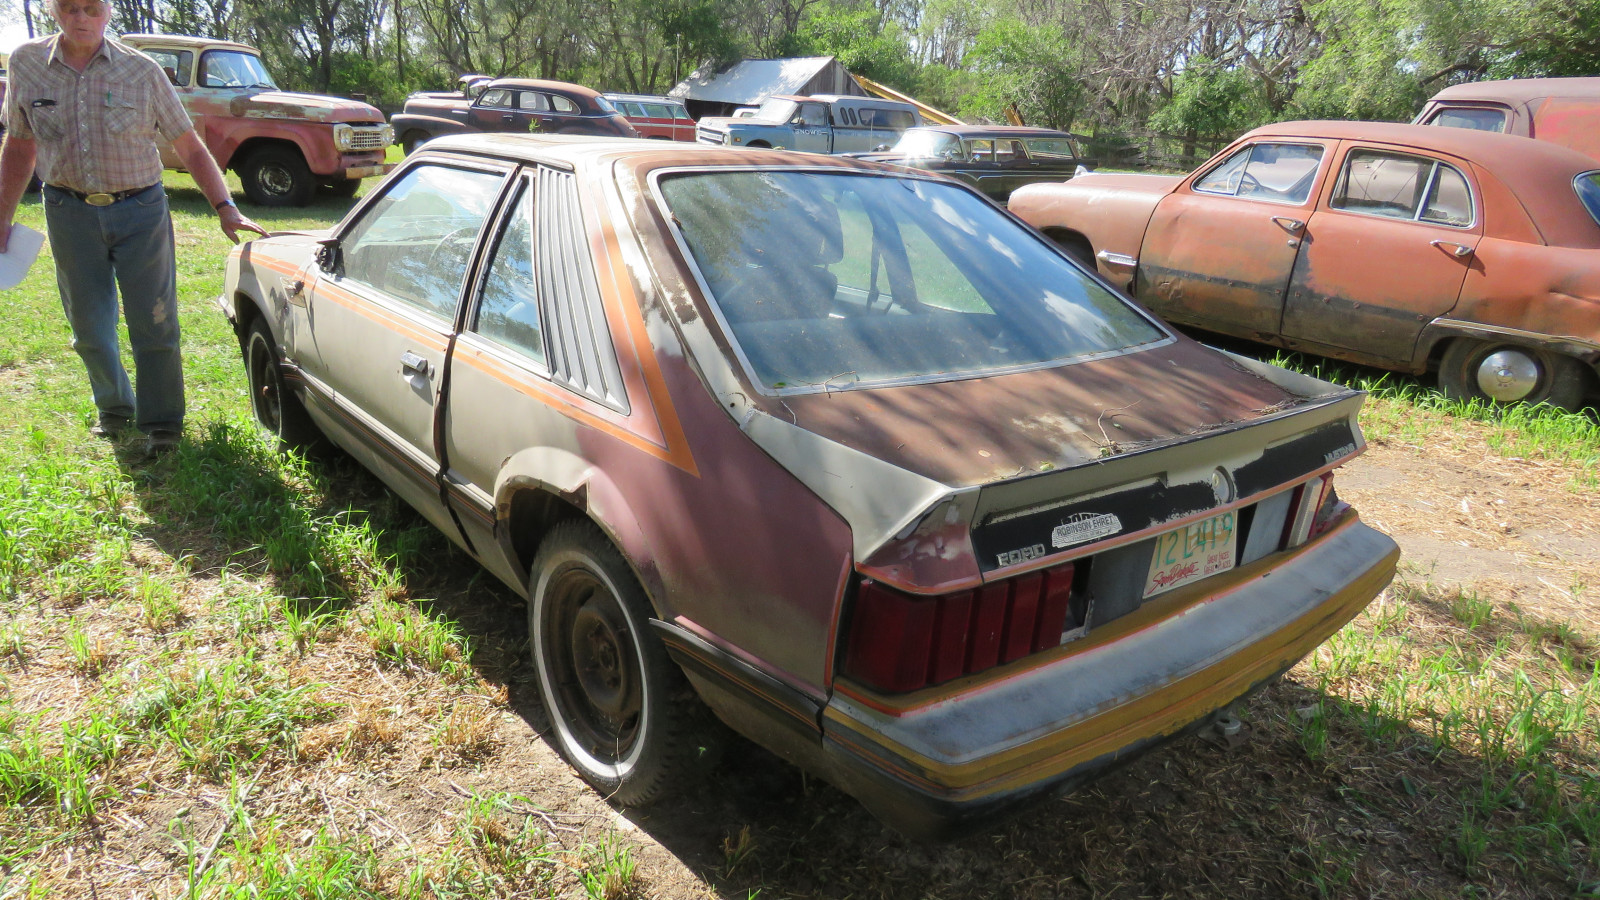 1979 Ford Mustang Coupe for Project or Parts - Image 4